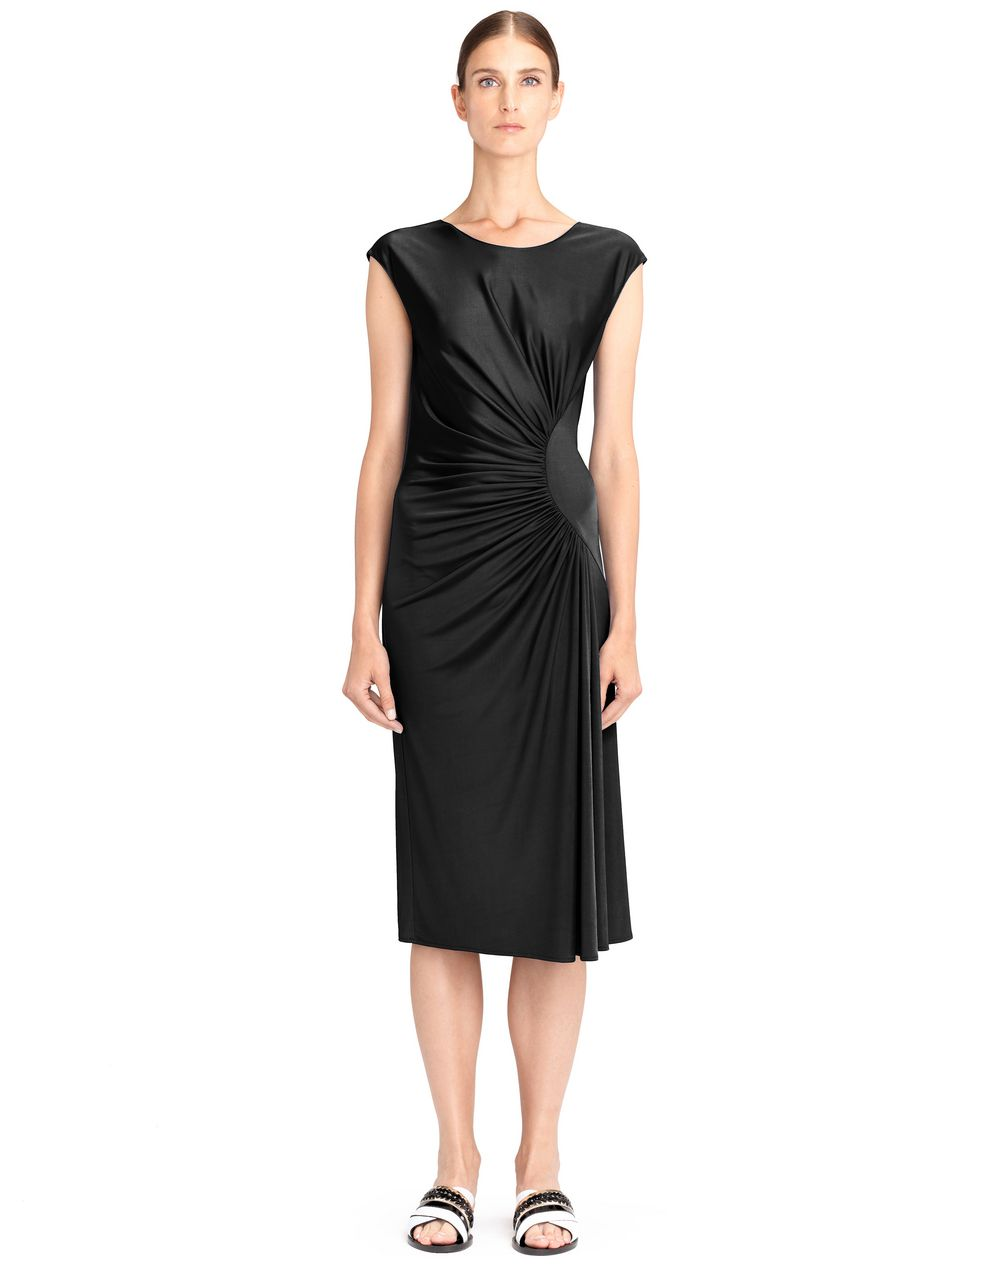 BLACK DRAPED JERSEY DRESS - Lanvin